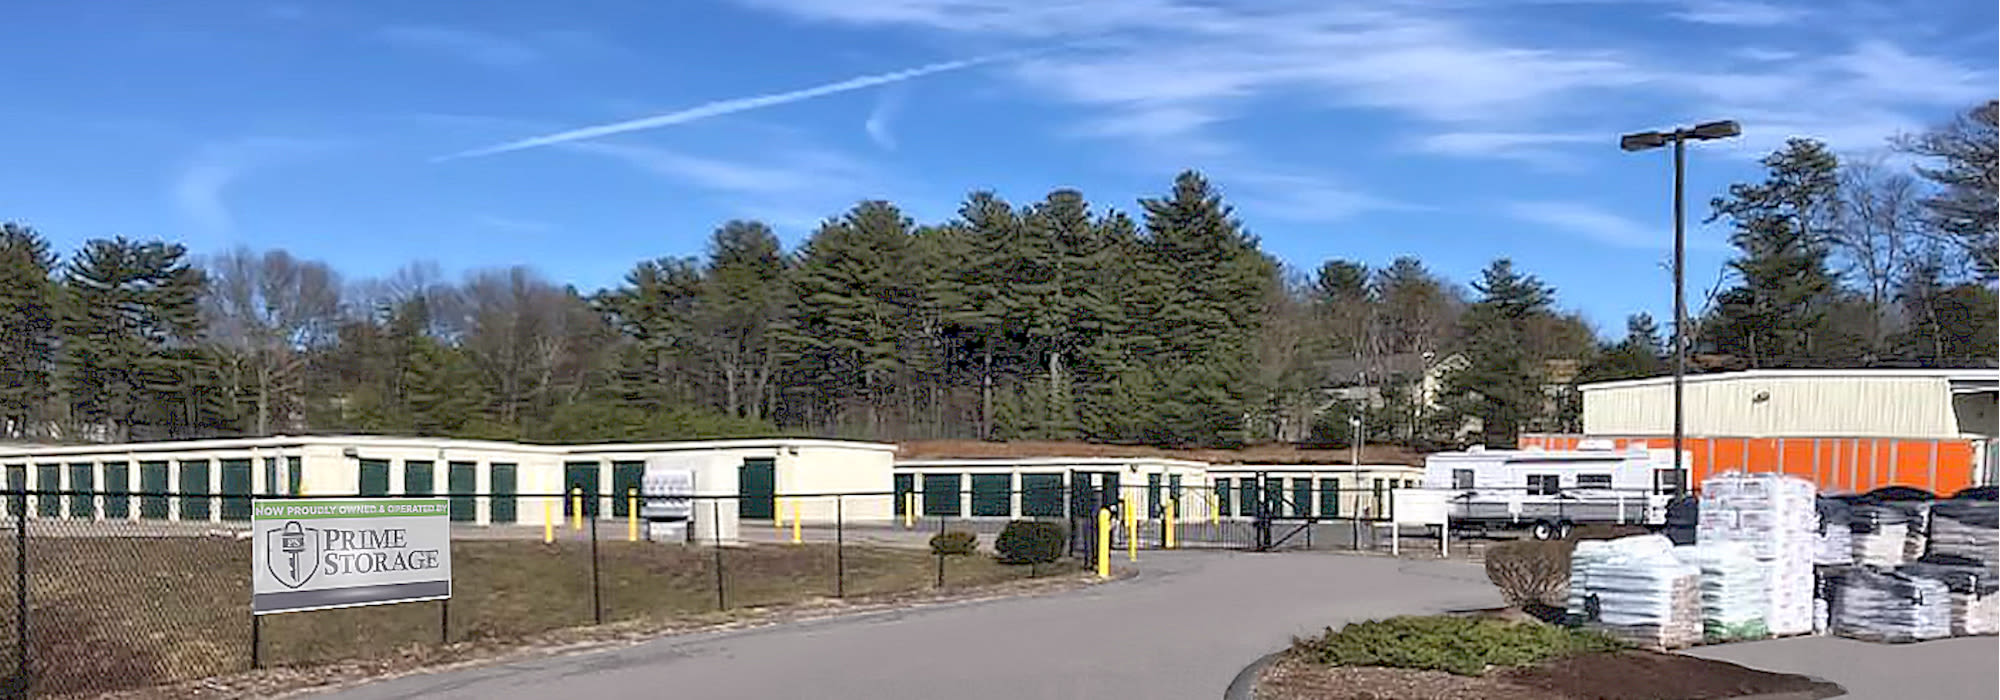 Prime Storage in North Grafton, MA